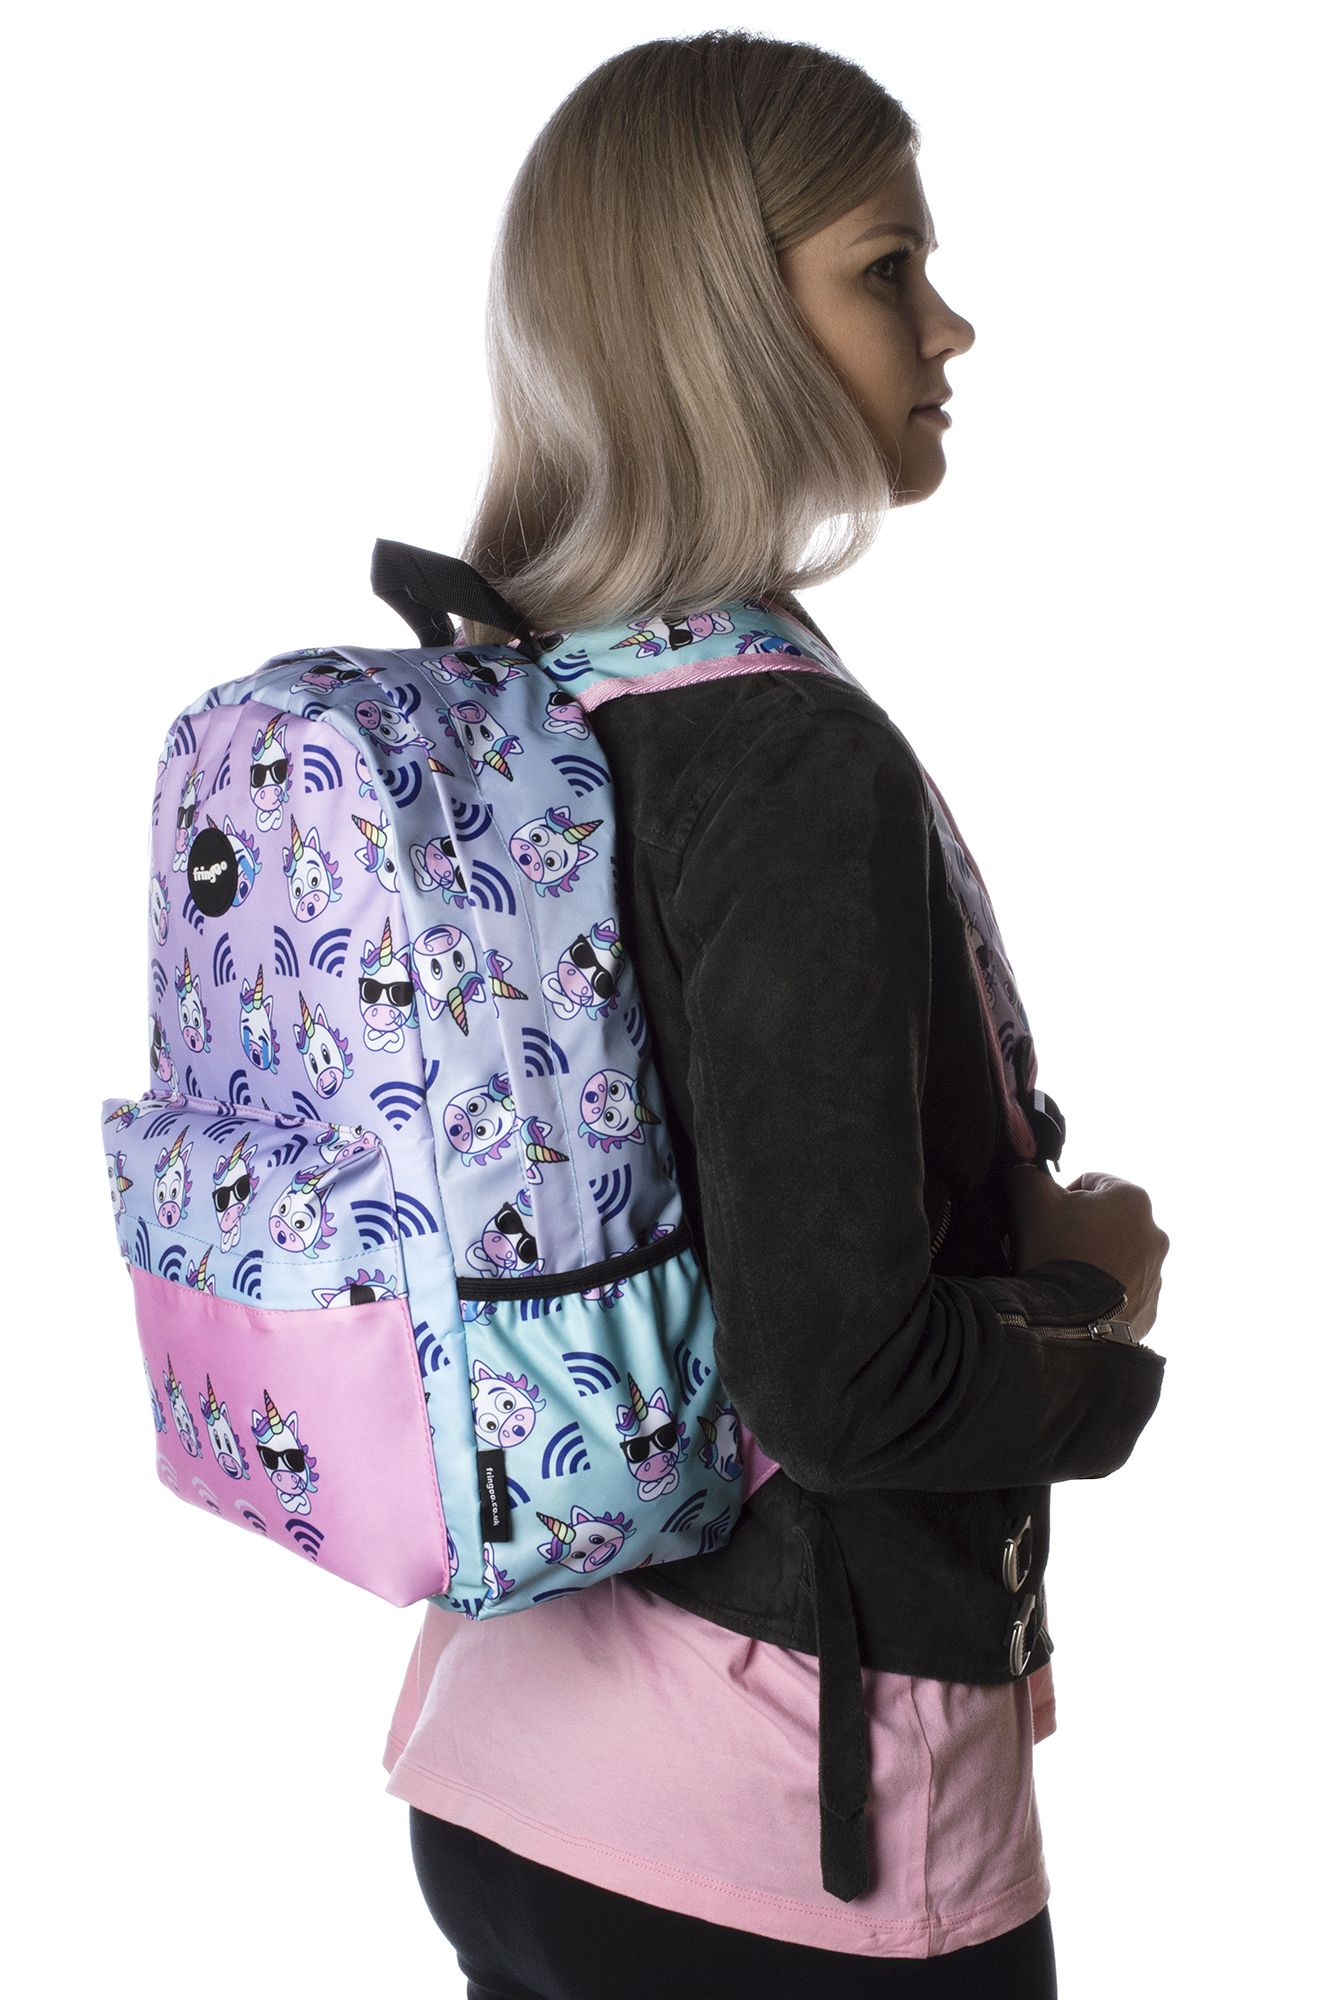 bde7aec9e01e Holo Unicorn Wifi waterproof backpack for kids. Super roomy main  compartment with built-in